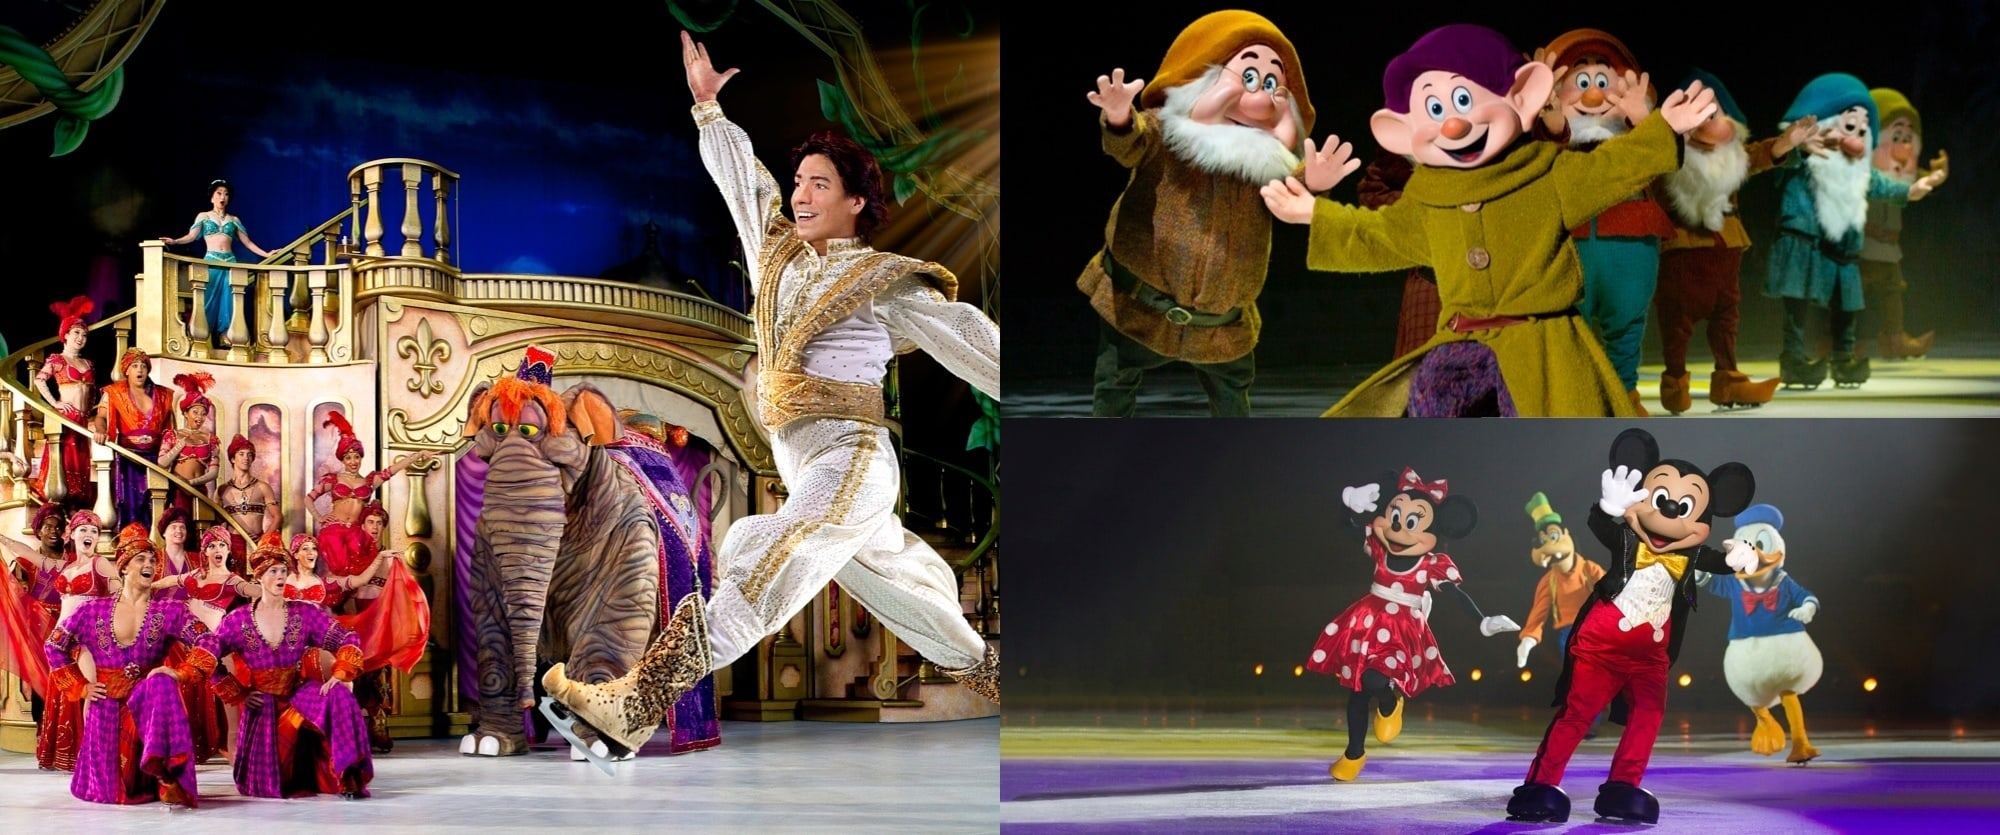 Images of Aladdin, Mickey and the seven Dwarves from The Wonderful World of Disney On Ice